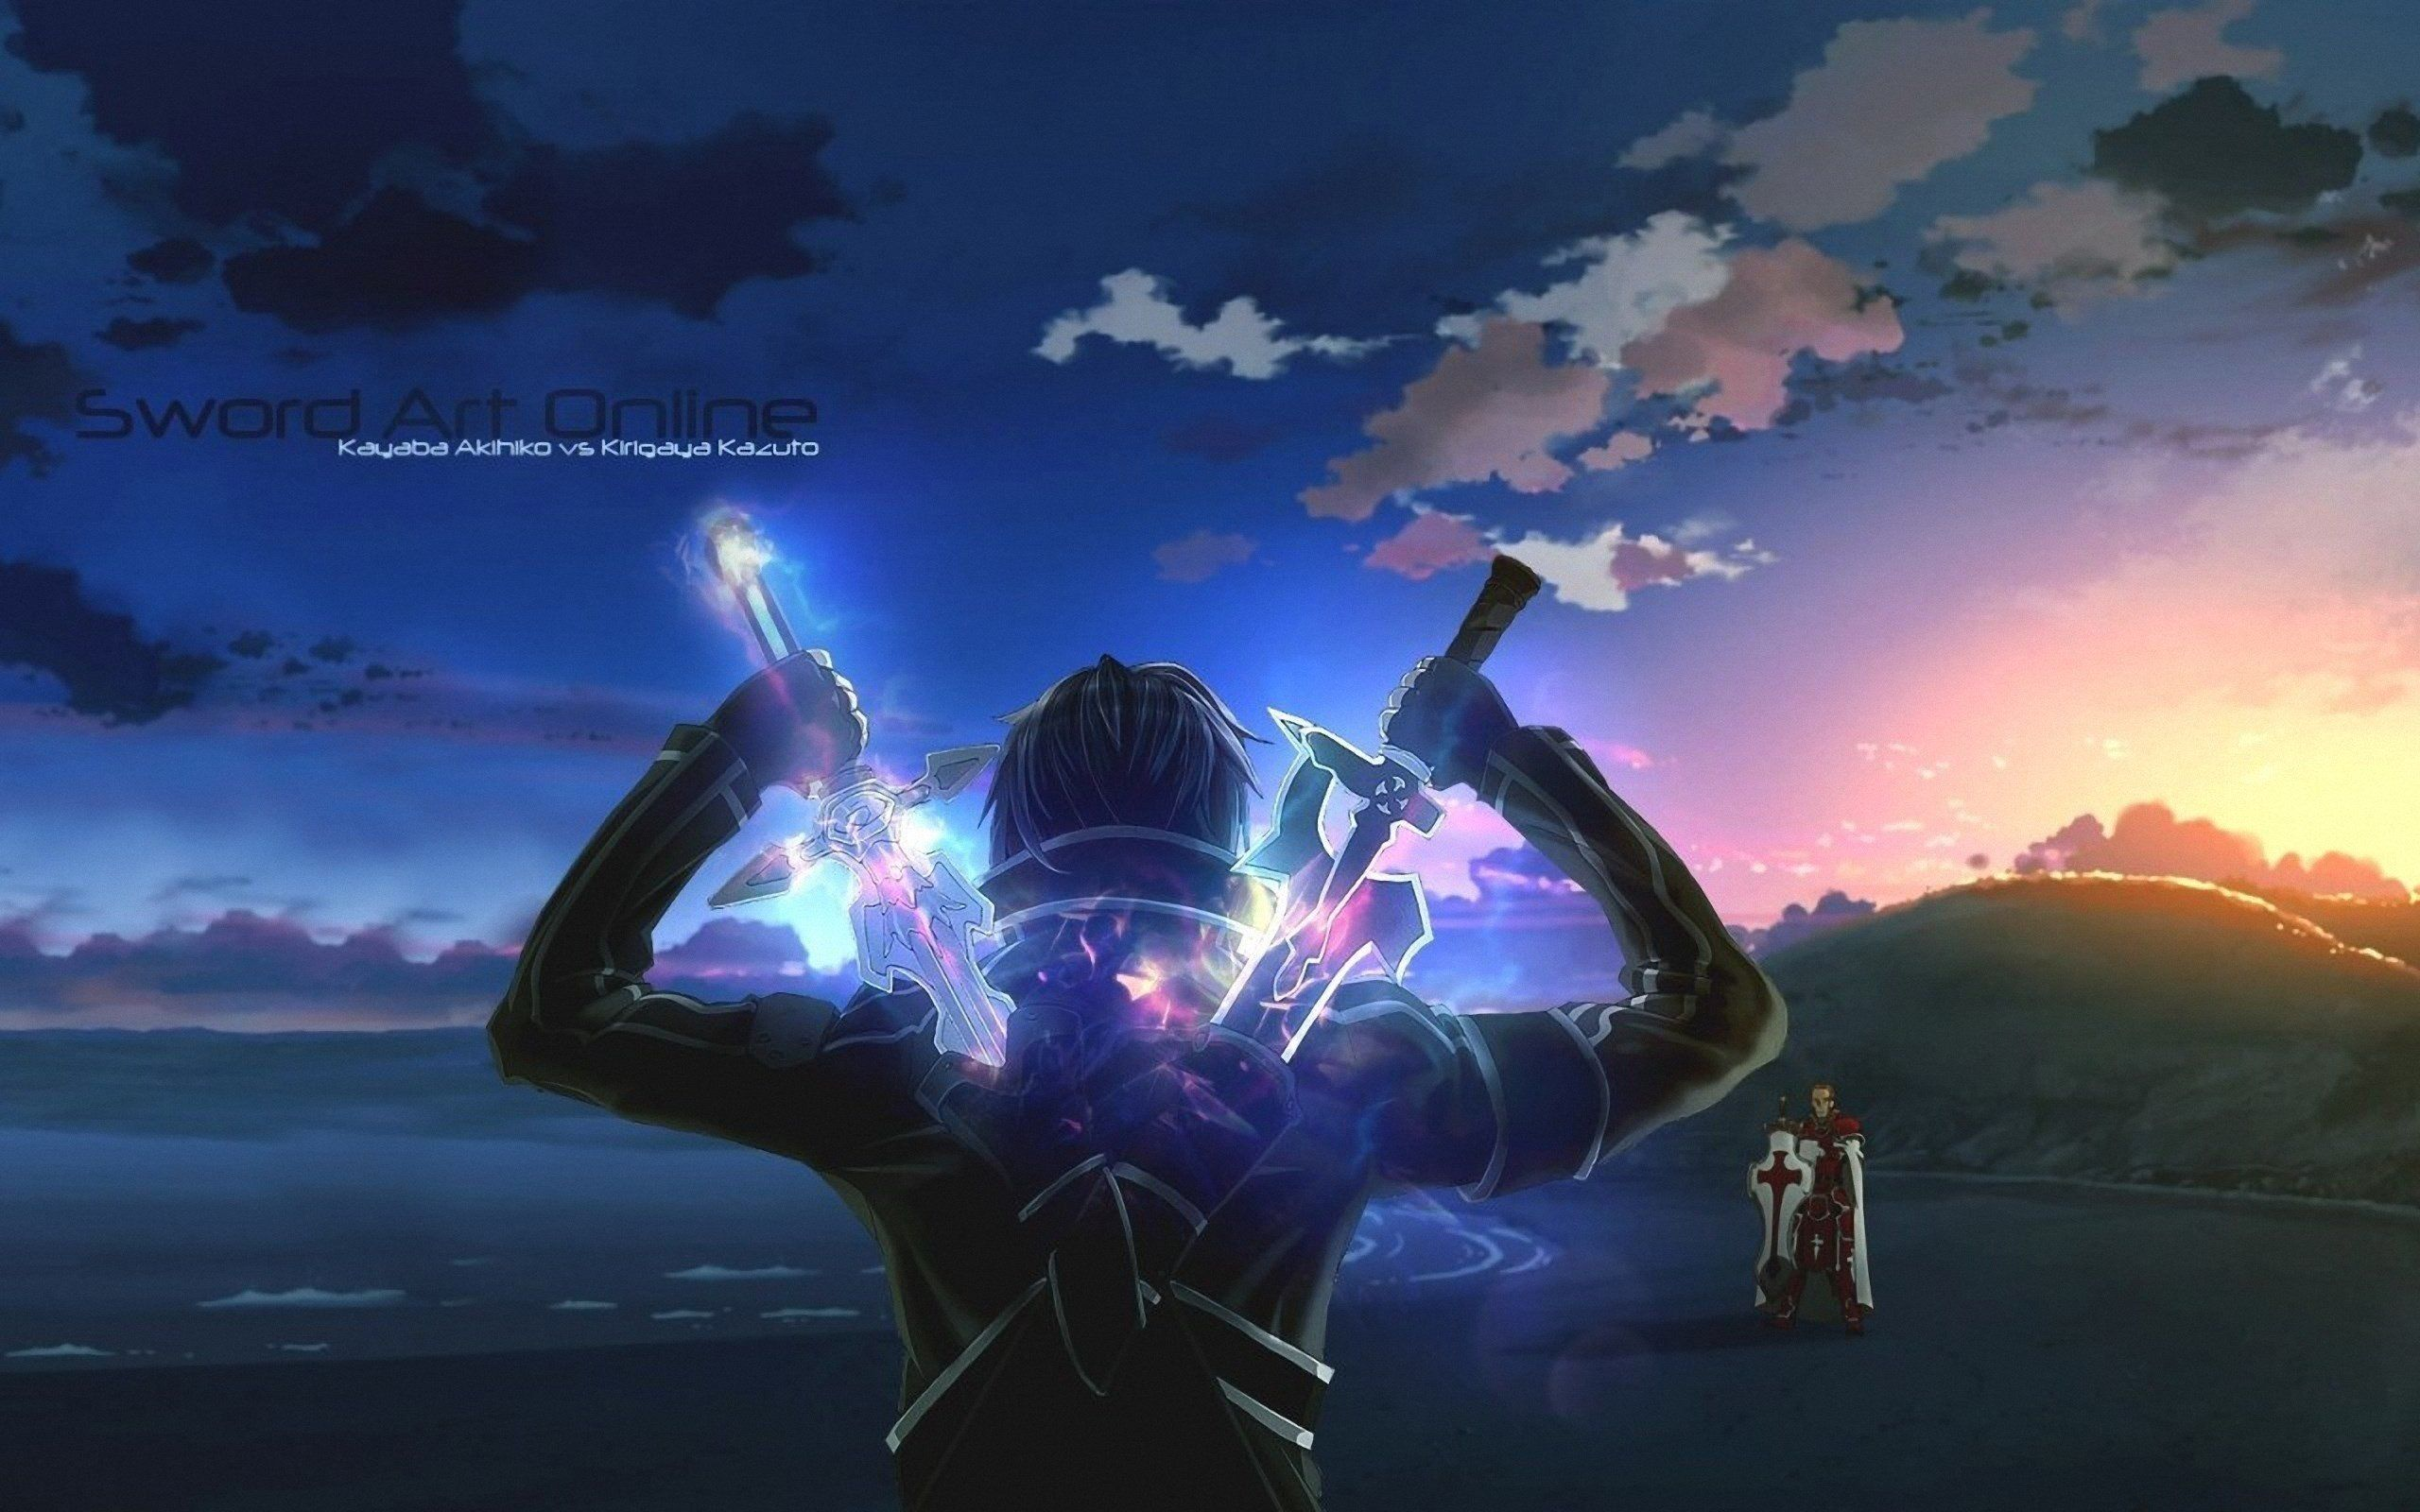 Wallpapers Sword Art Online Hd 4k Sword Art Online Wallpaper Sword Art Online Kirito Sword Art